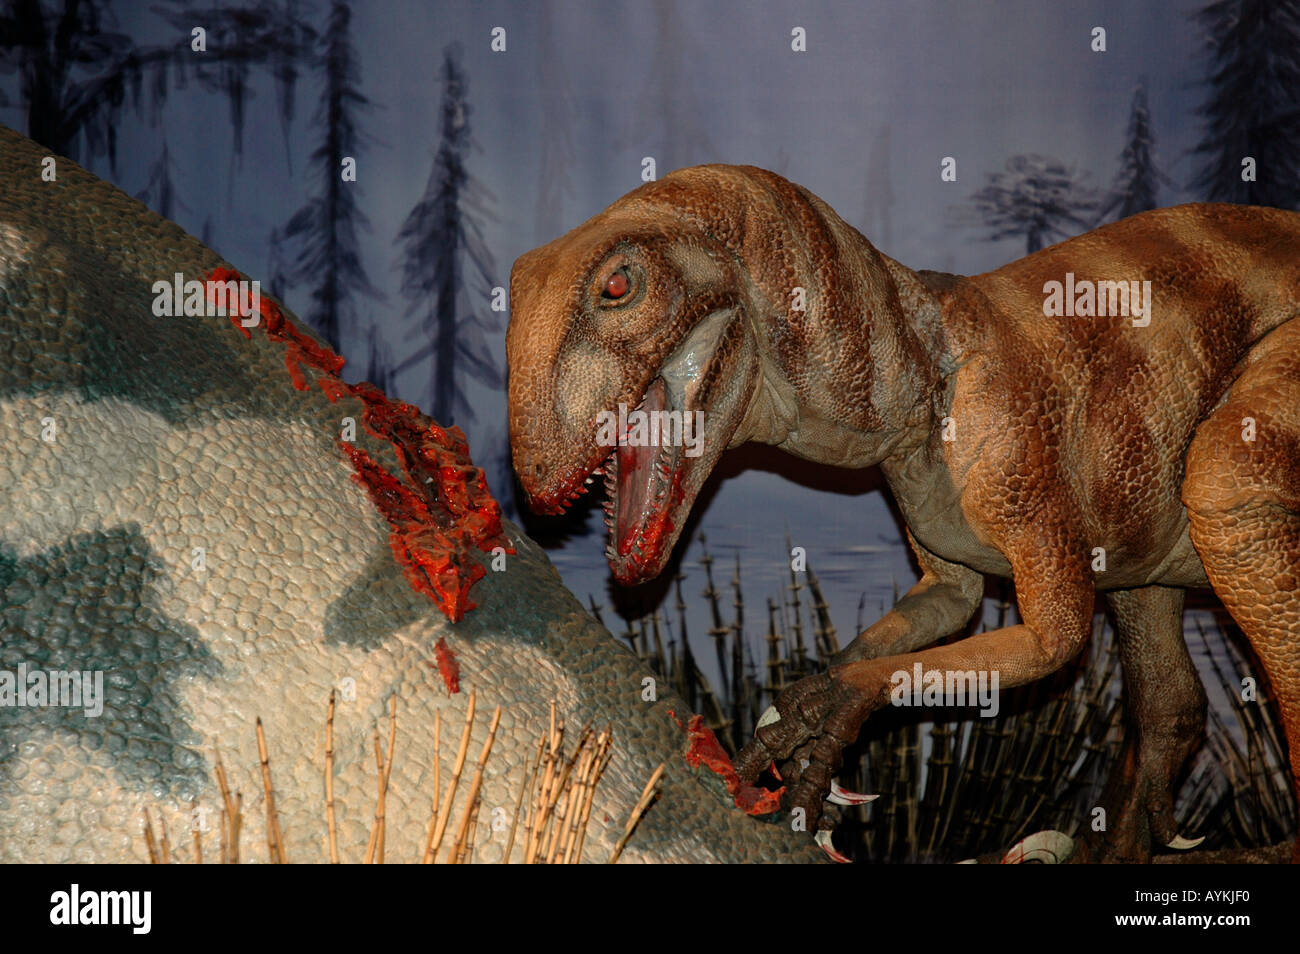 Deinonychus eating - Stock Image